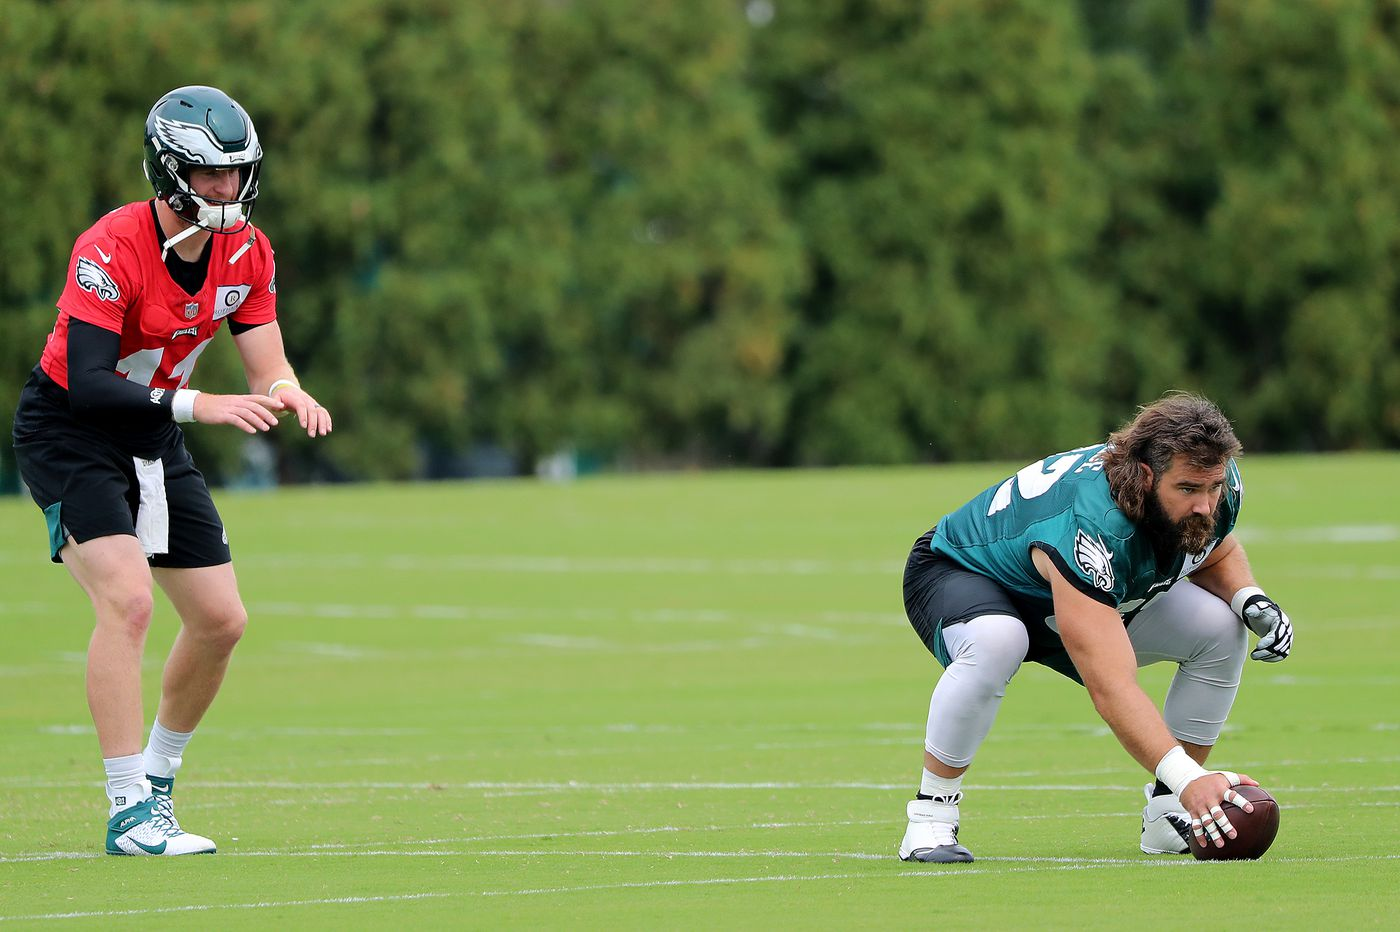 What to watch for in the Eagles-Rams Week 2 matchup | Early Birds